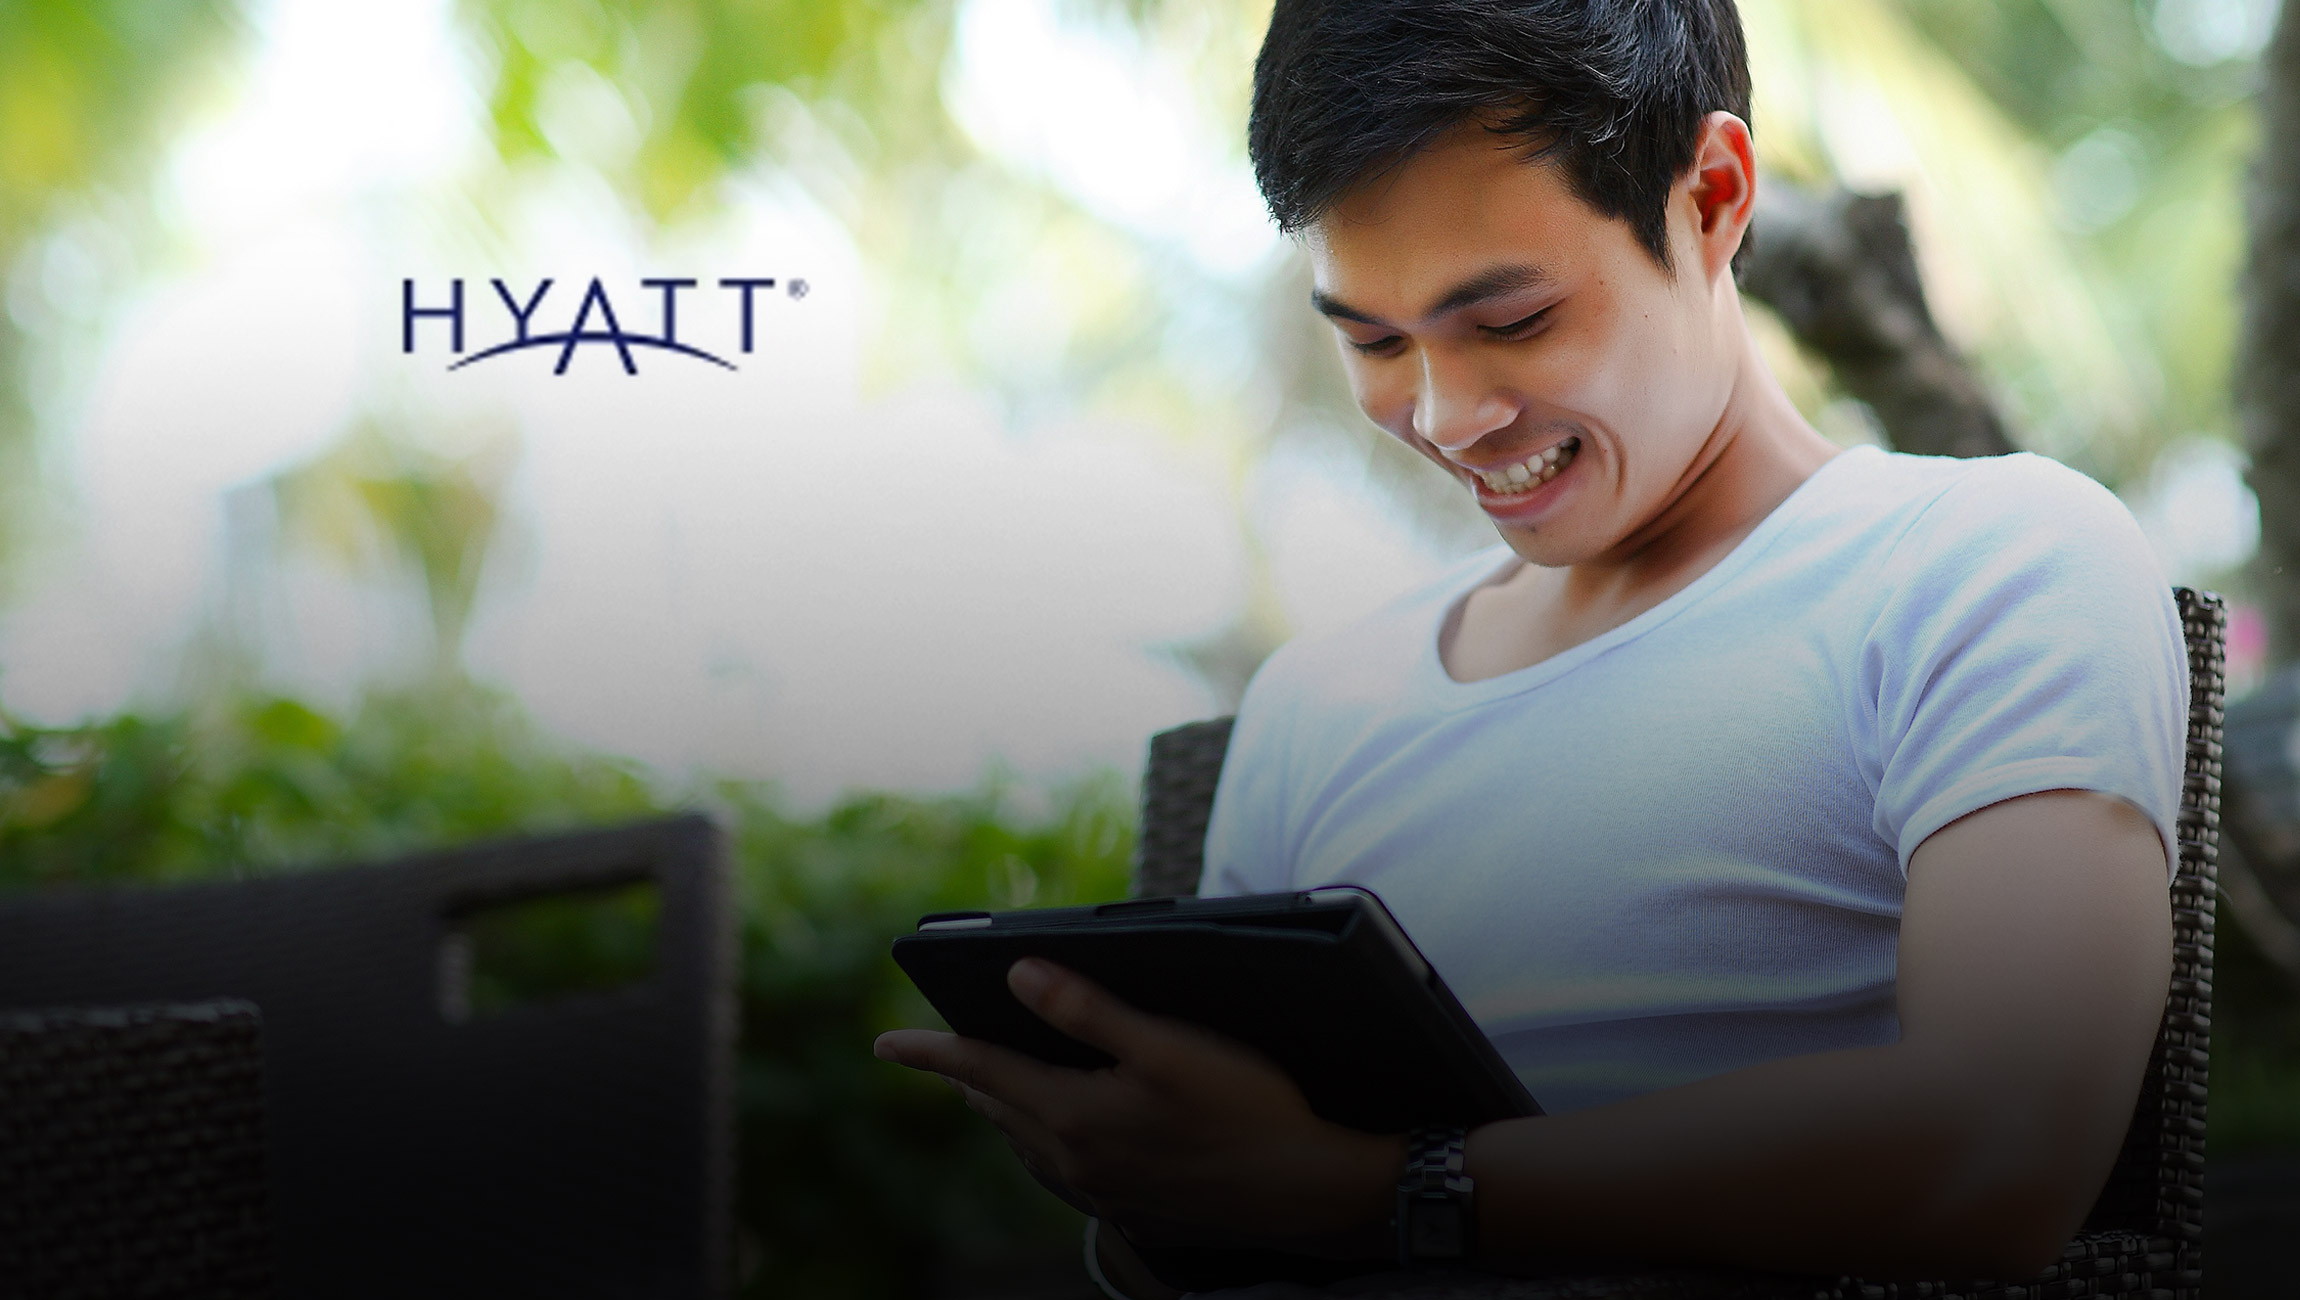 Hyatt Introduces Digital Platform, Hyatt Together, to Inspire Wellbeing at Home or While Traveling